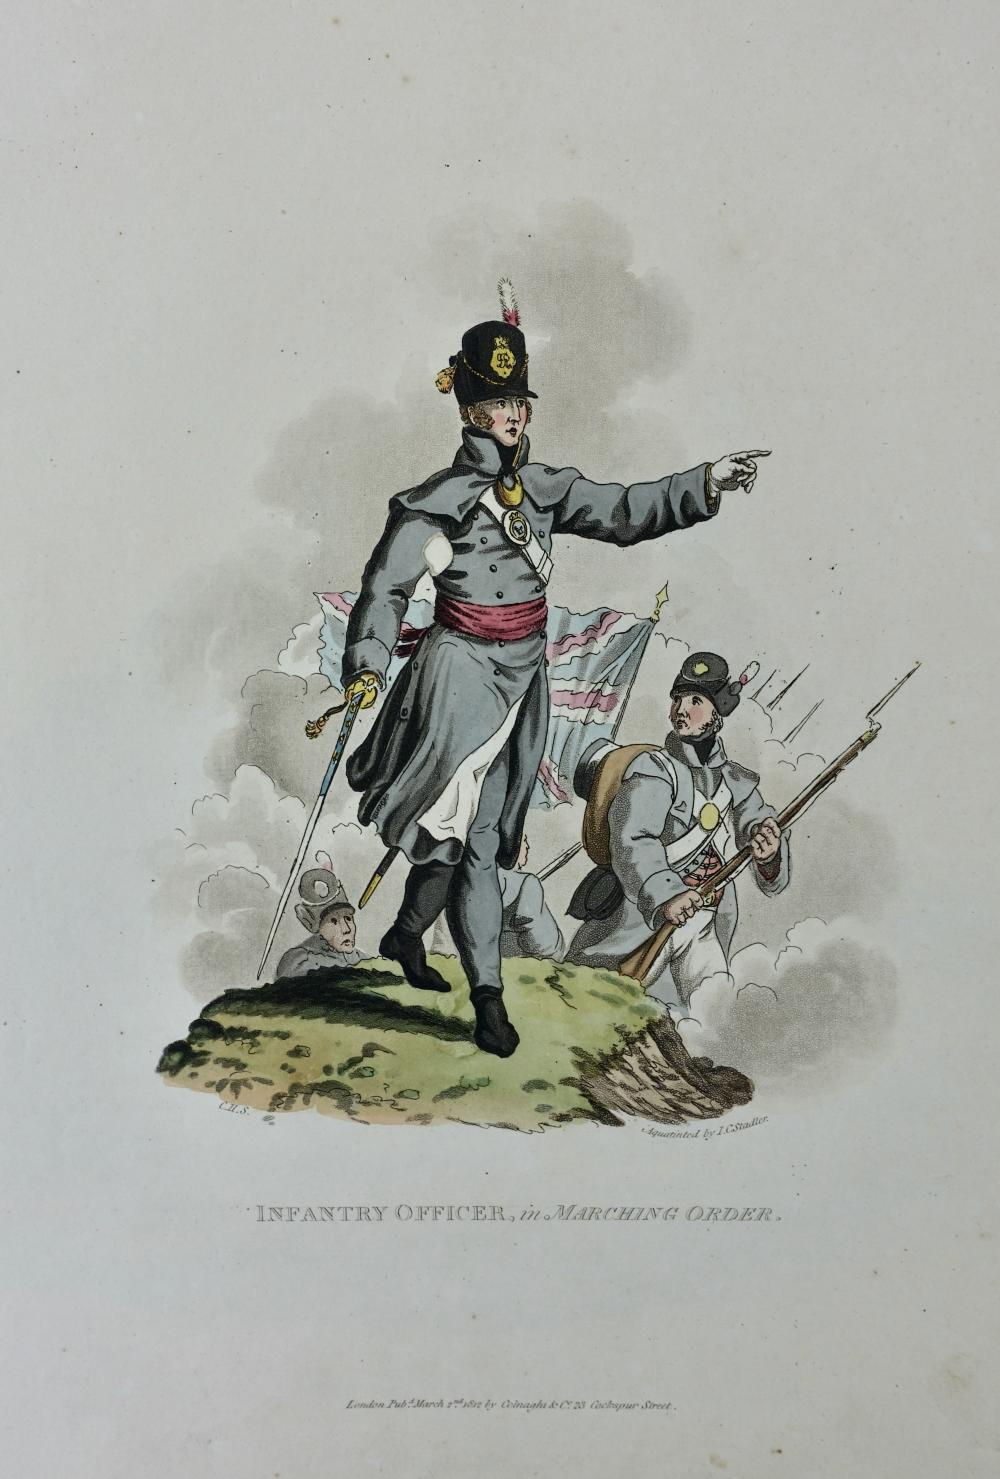 SMITH, C.H. The Costumes of the Army of the British Empire. Lond